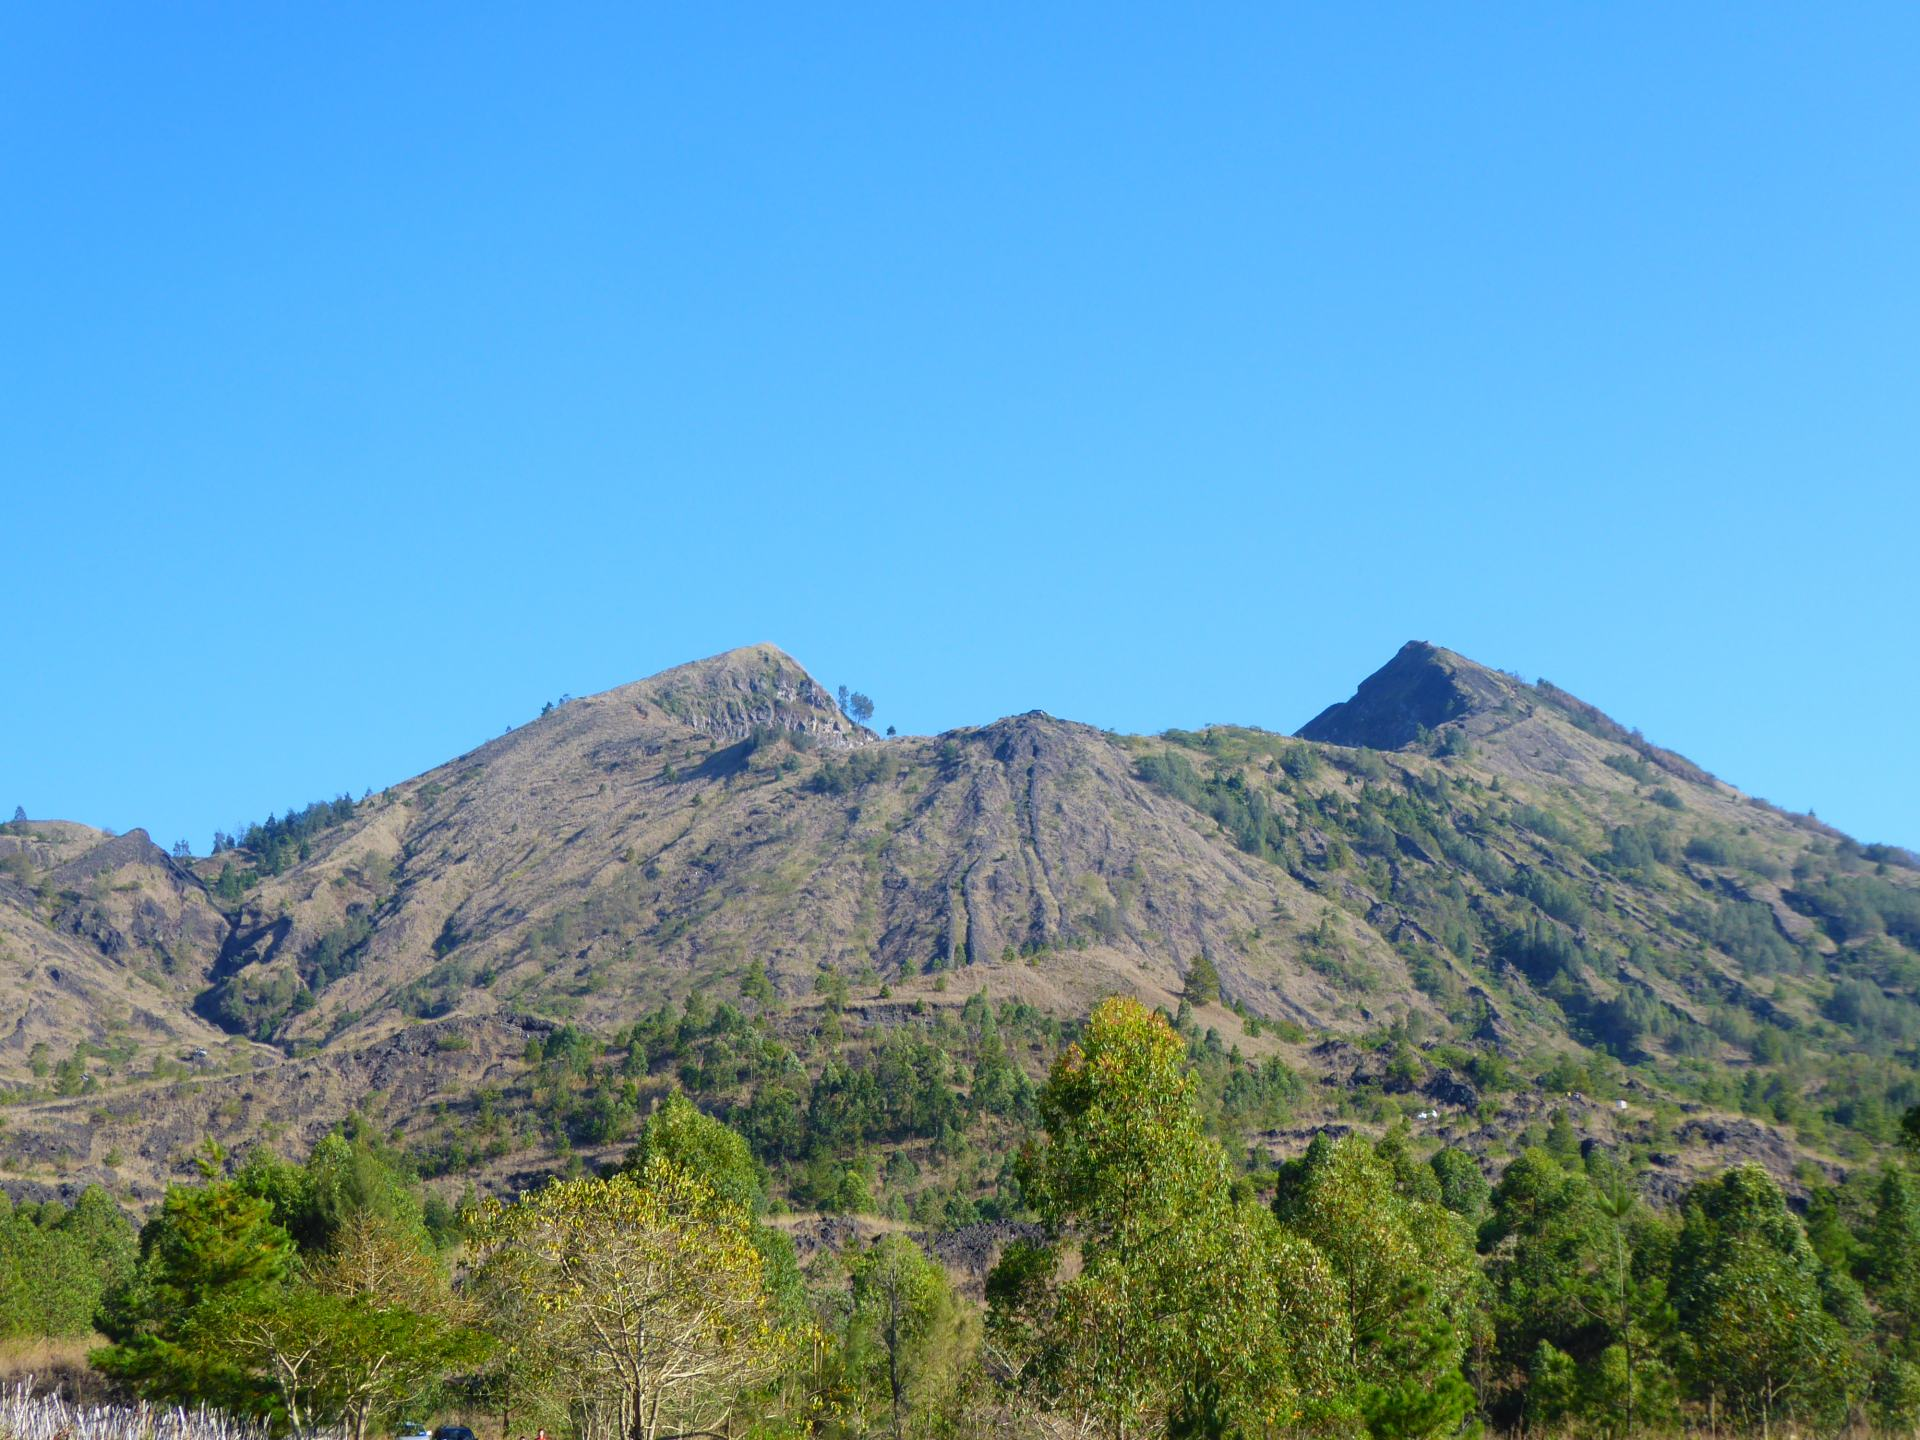 A view of the Mount Batur volcano, showing the crater, with greenery in the foreground and bright blue clear sky. One of the most popular treks in Southeast Asia.